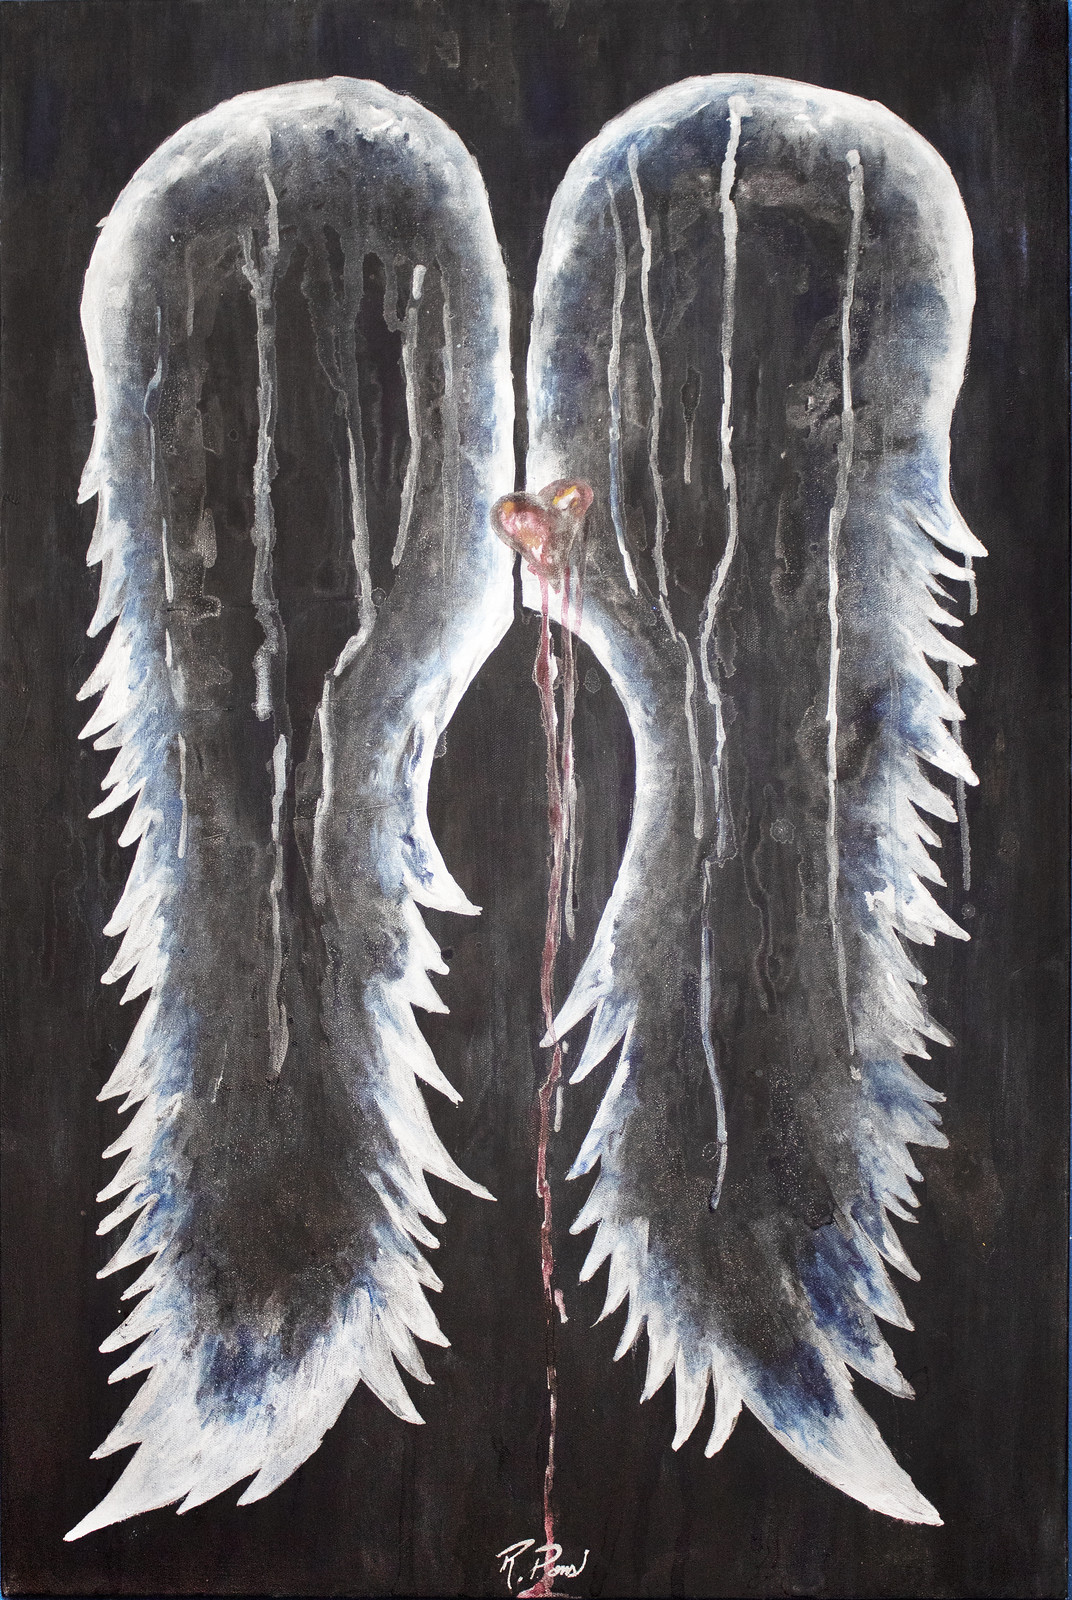 REBECCA PONS, Rebecca Pons, Rebecca Pons Art, Rebecca Pons Studio, Rebecca Pons Re, , watercolor, fine art, WINGS, Wings and Aura collection, WAtercolor Wings, COMMISSION Collection, Artist